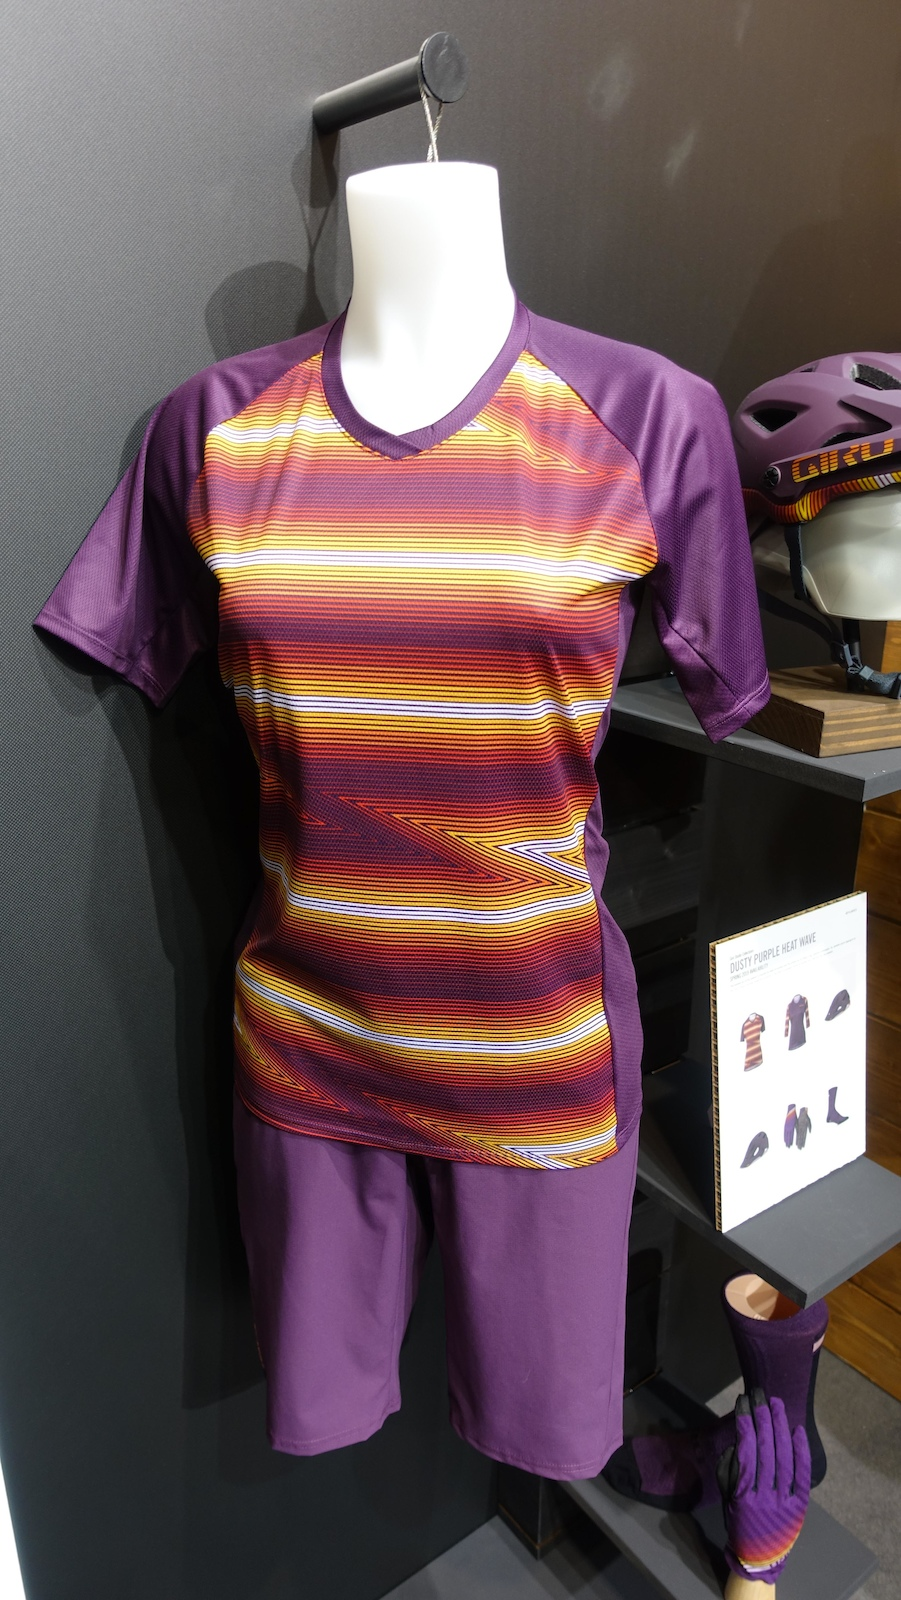 Giro s dusty purple heat wave themed kit is due to release in Spring 2019. The contrast of colours looks great in the flesh.